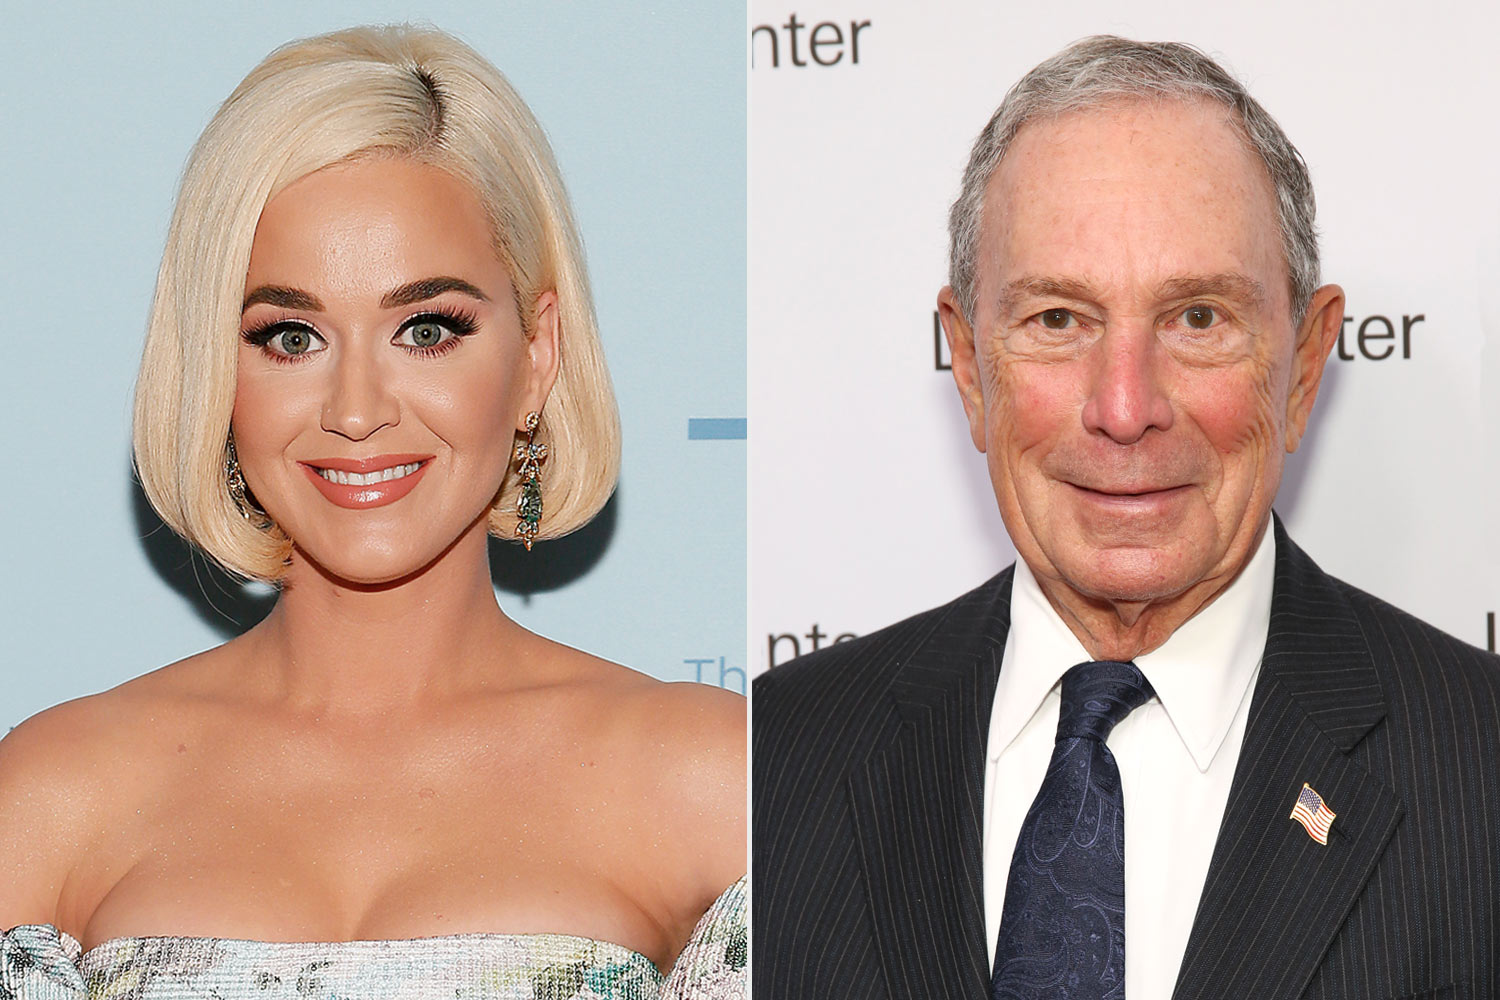 Katy Perry and Michael Bloomberg